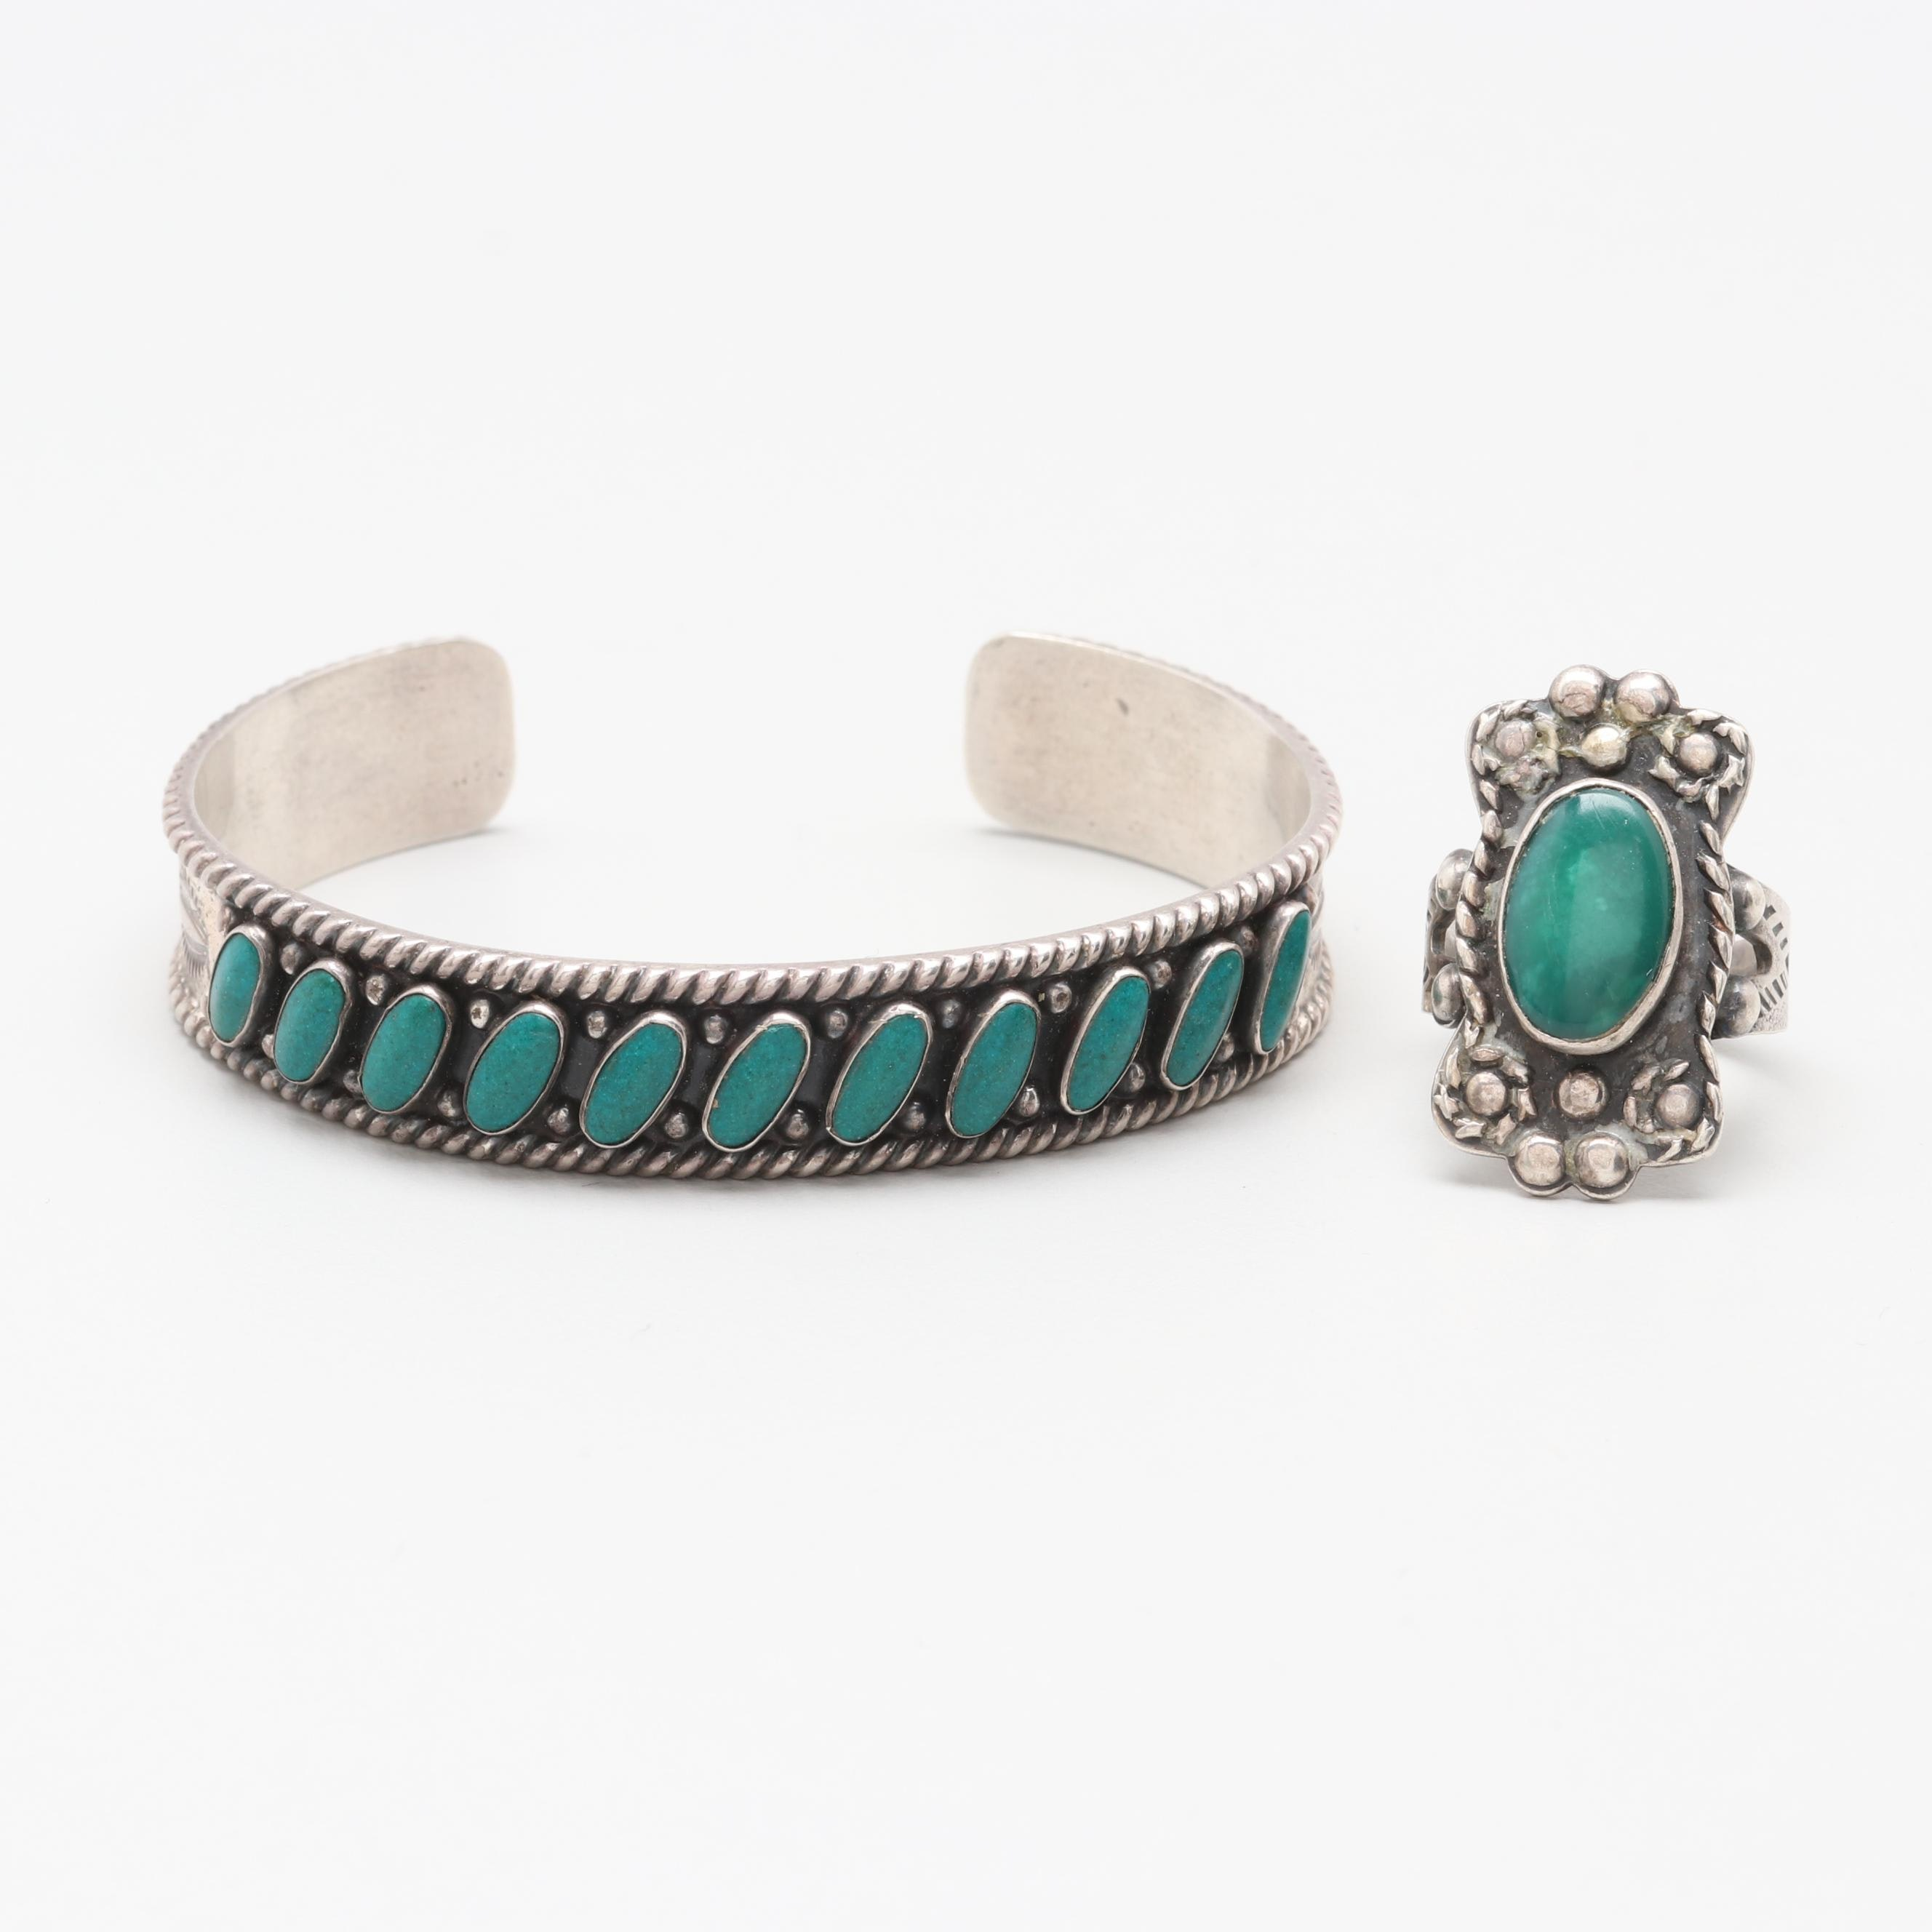 Southwestern Style Sterling Silver Turquoise Jewelry Assortment